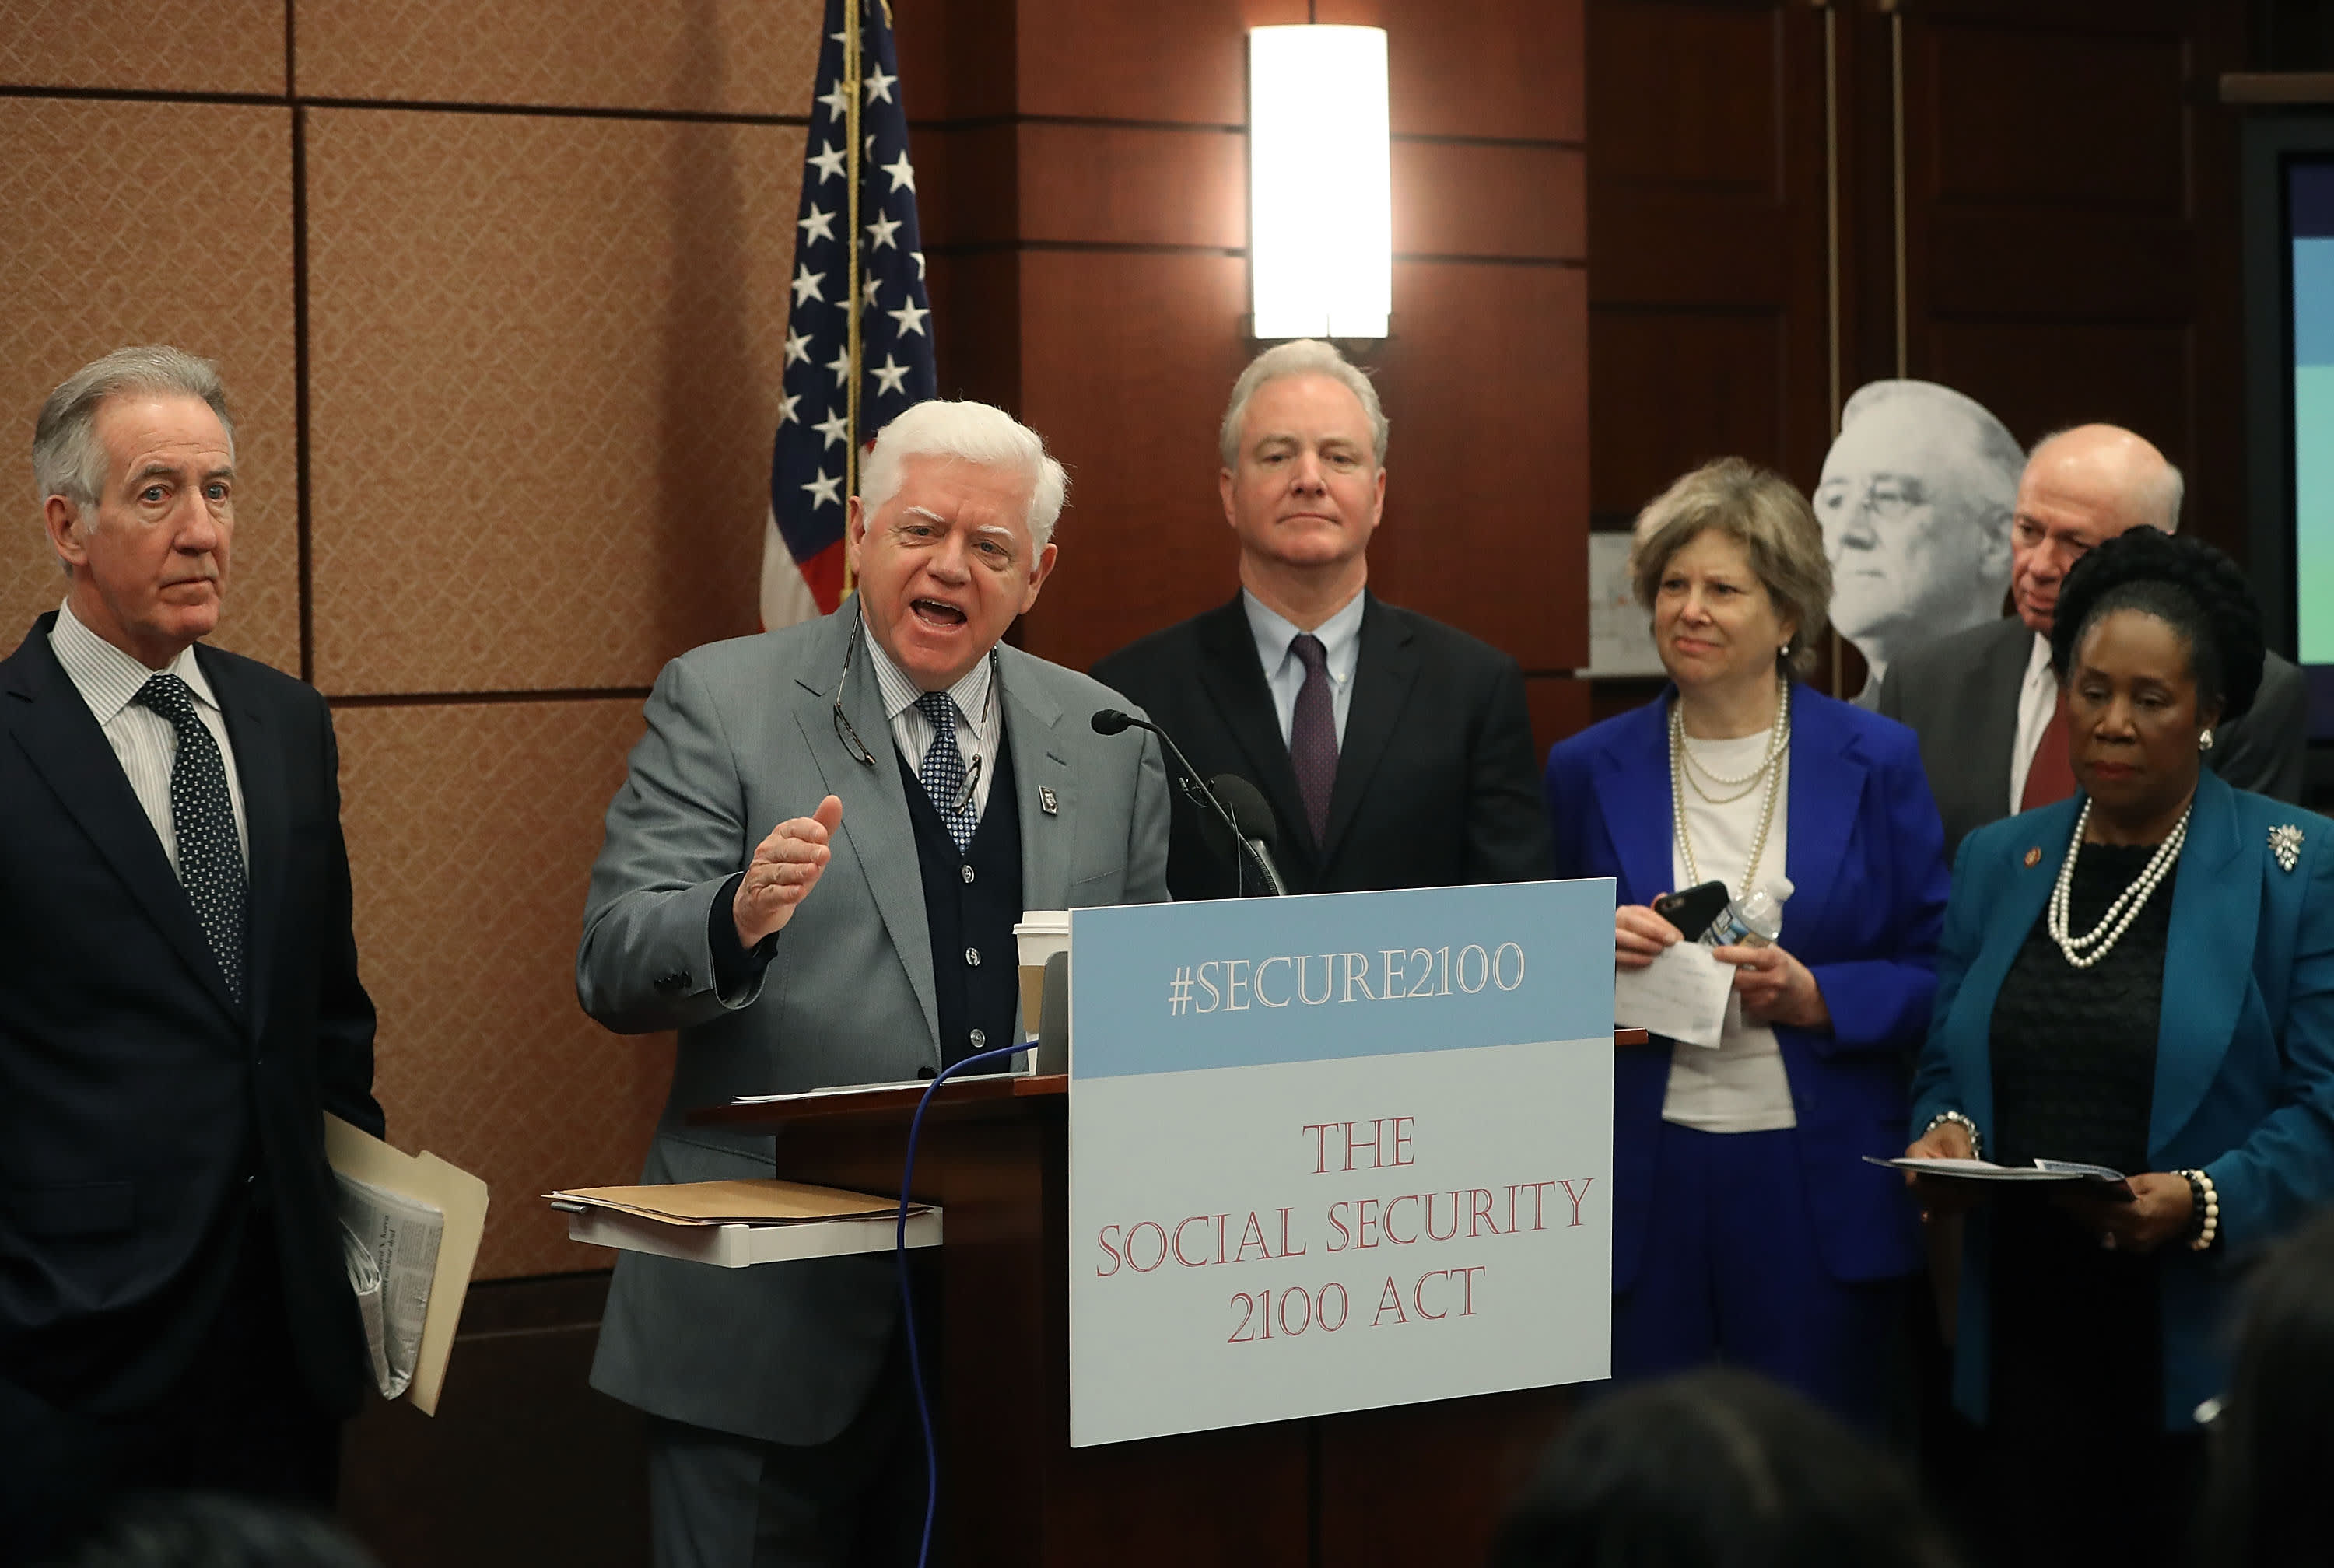 This bill could extend Social Security's solvency for the rest of this century. Here's what stands in its way